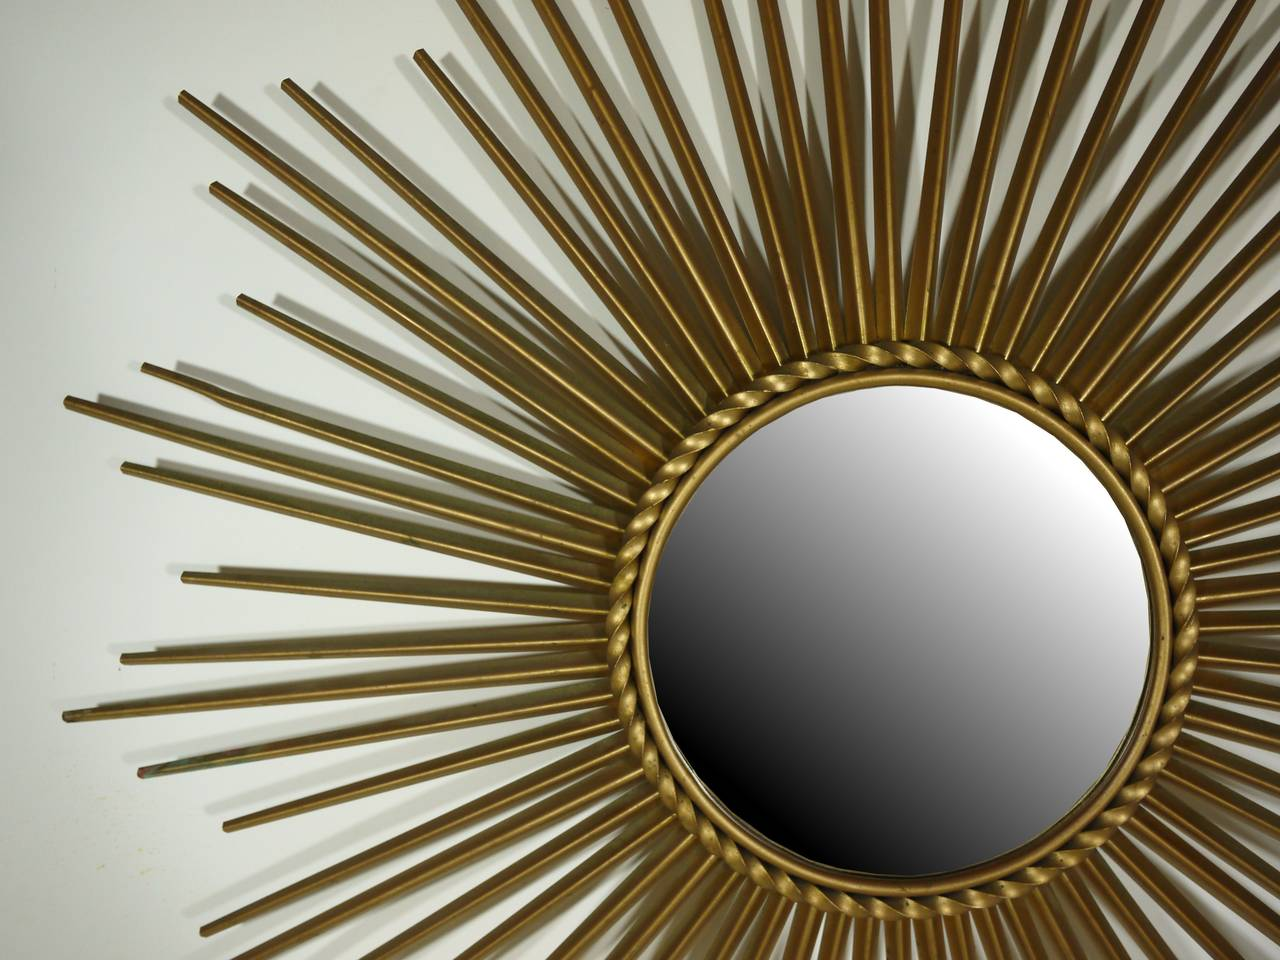 Gilt metal mirror by chaty vallauris for sale at 1stdibs for Chaty vallauris miroir